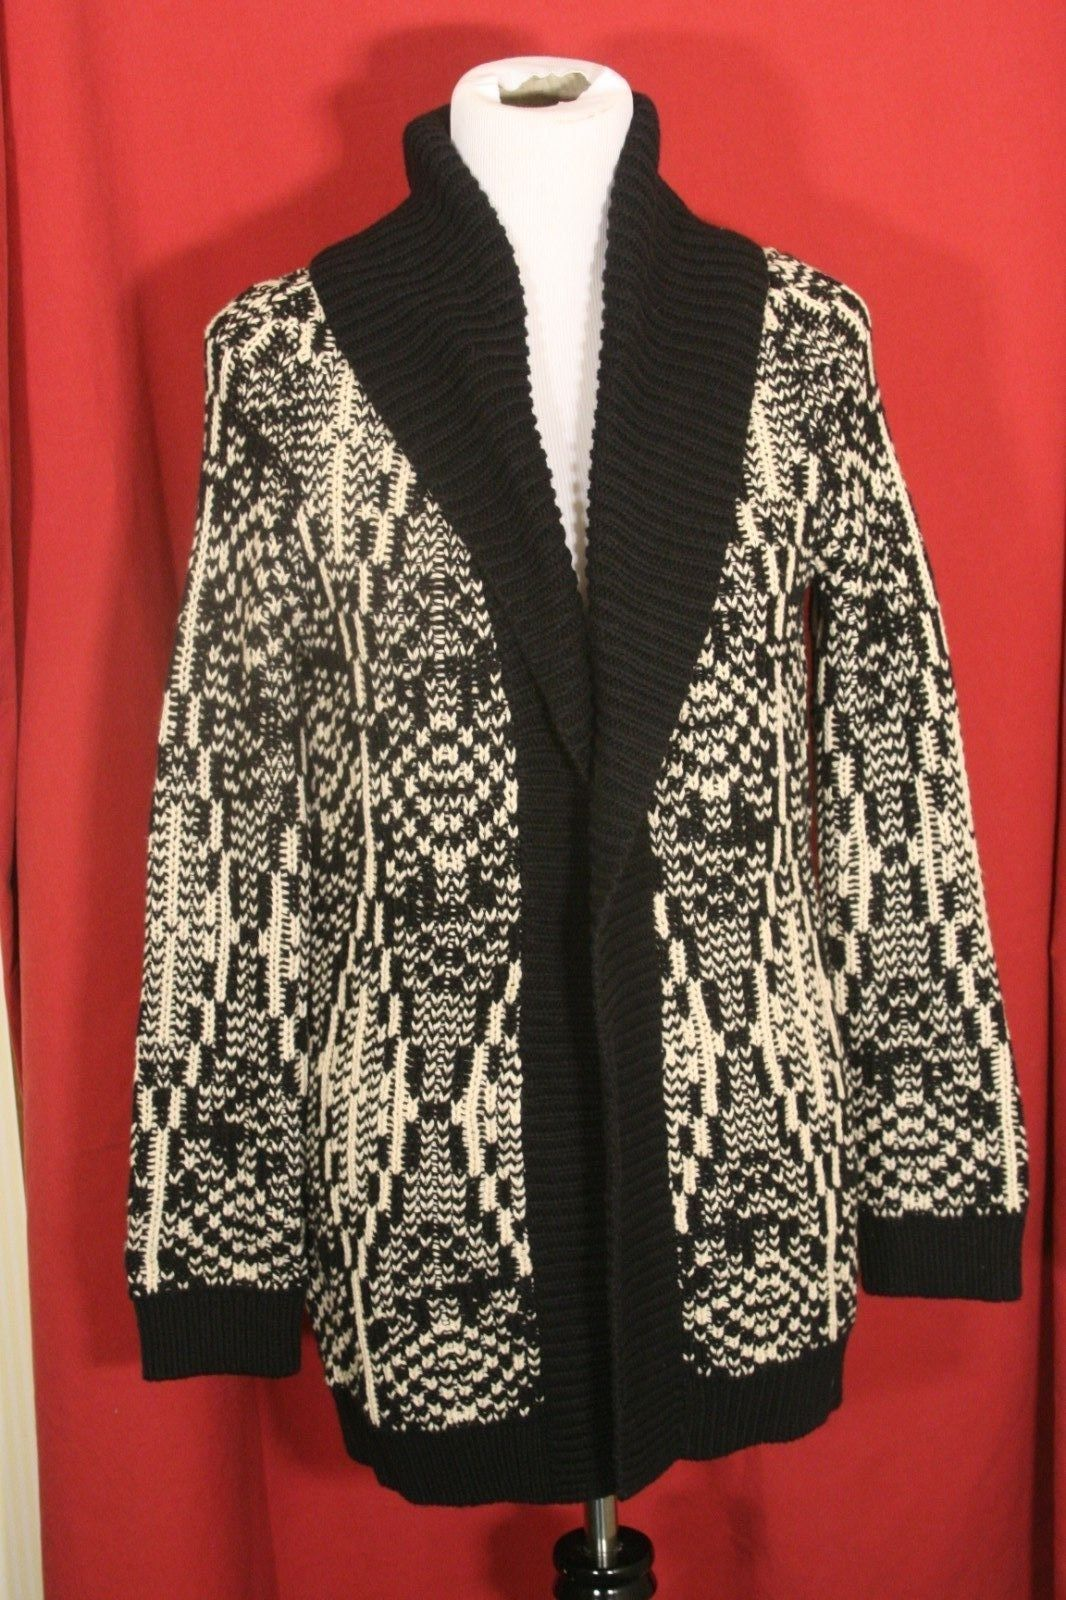 Primary image for TALBOTS WOMENS BLACK BEIGE THICK CARDIGAN SWEATER M P PETITES NWT $139